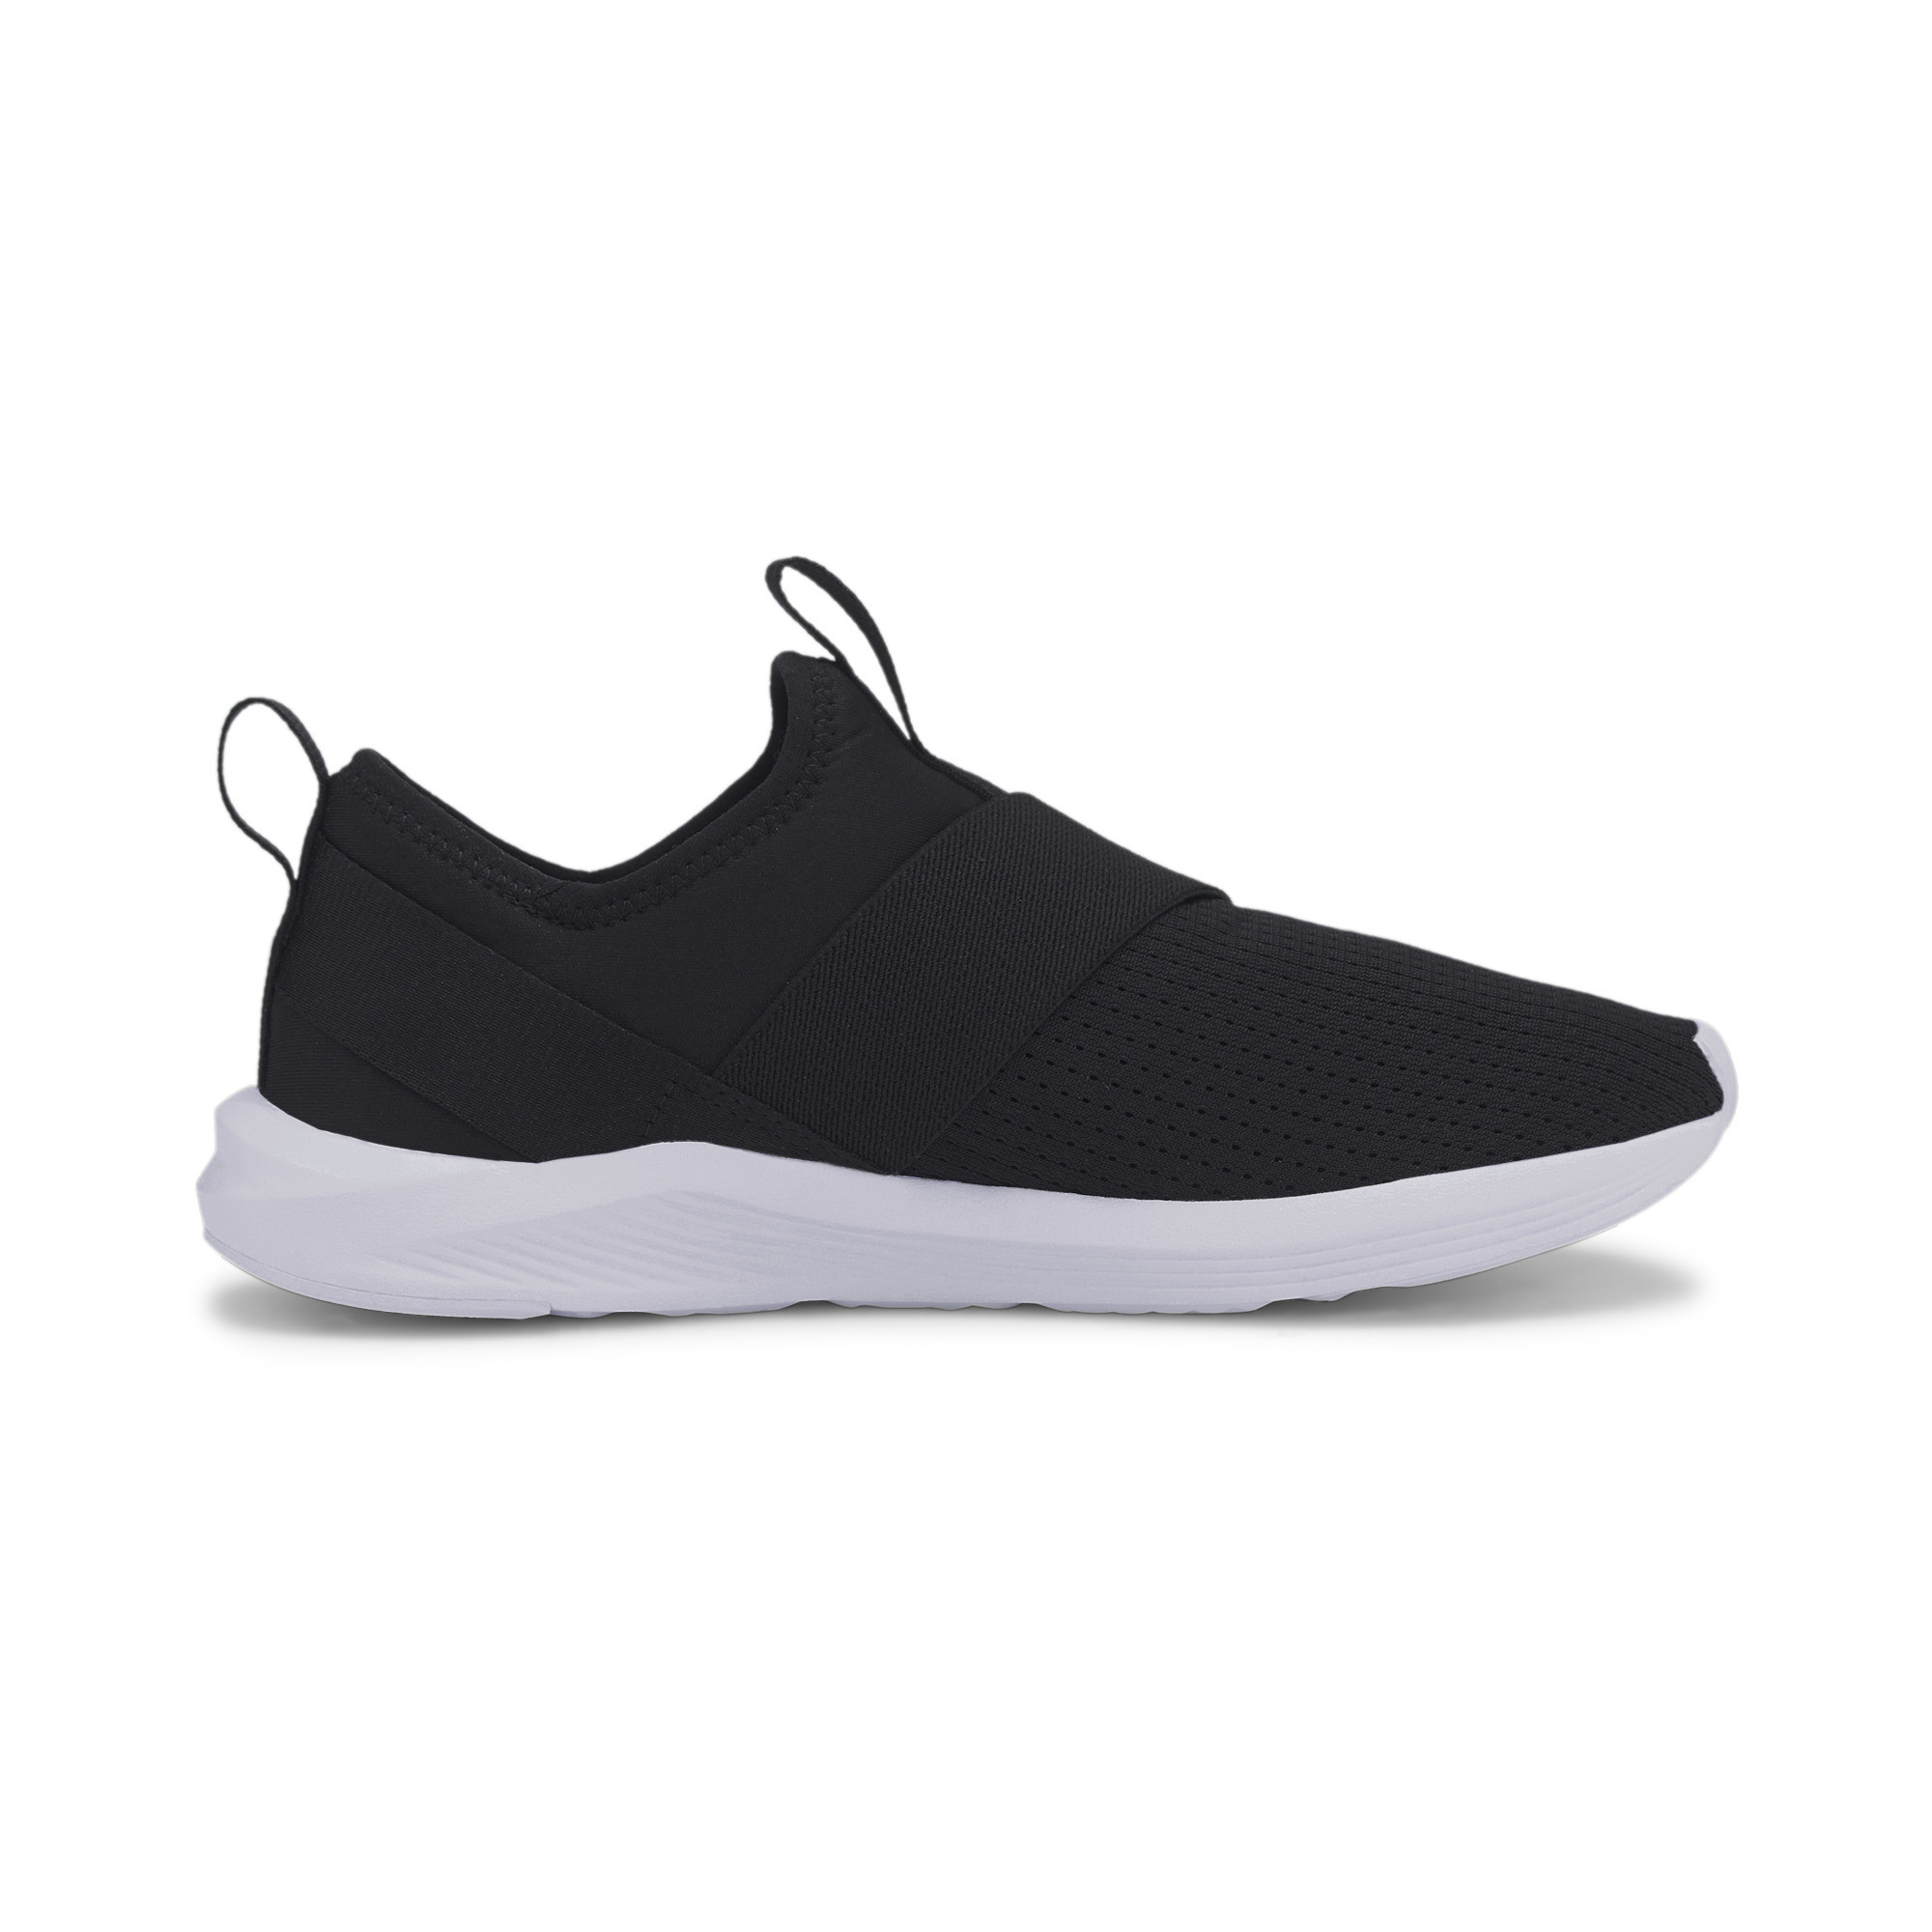 PUMA-Women-039-s-Prowl-Slip-On-Training-Shoes thumbnail 26